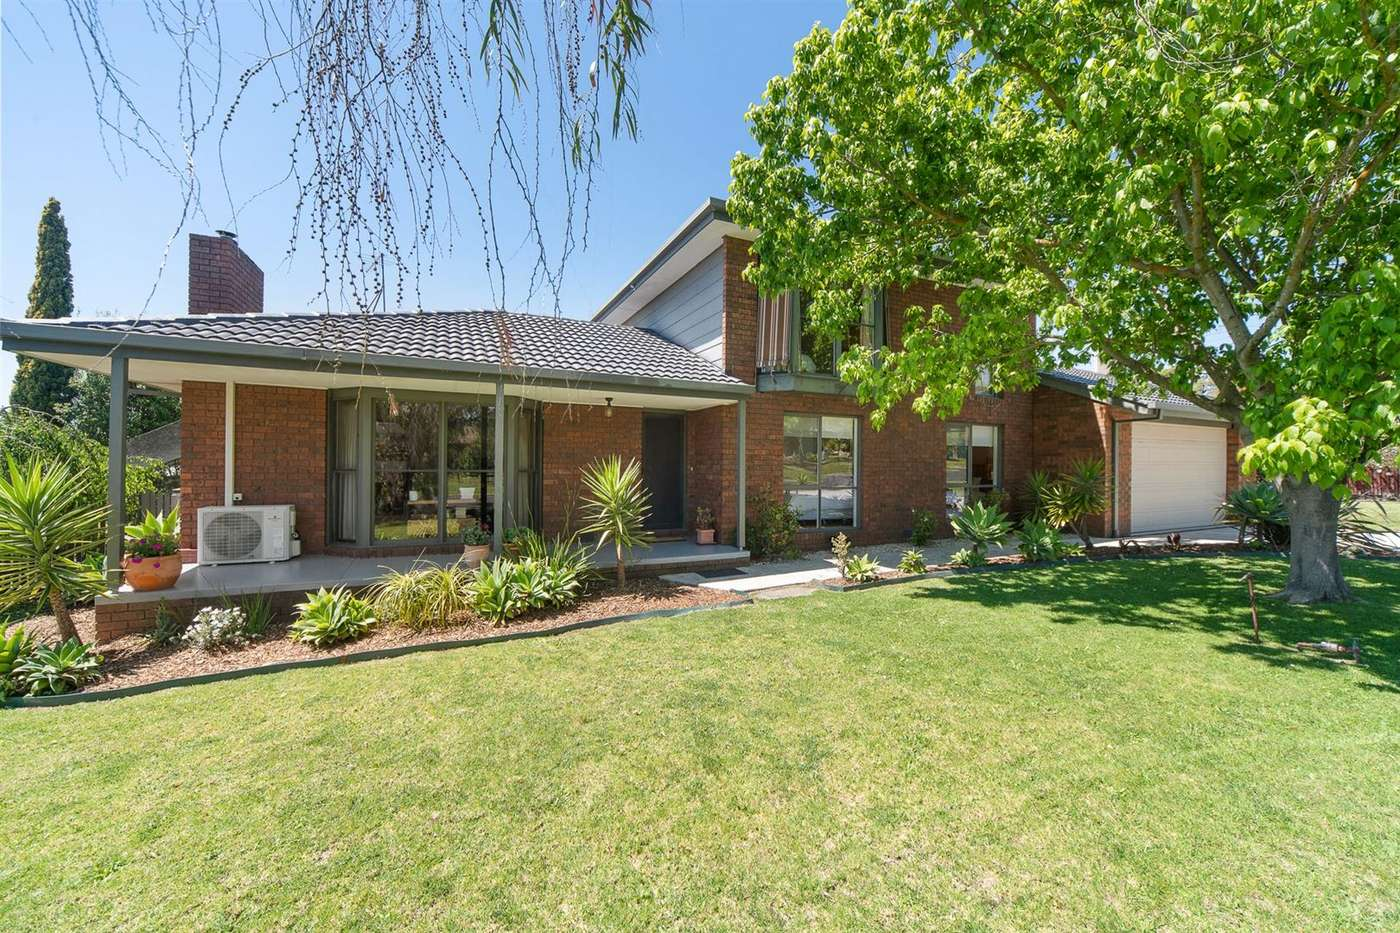 Main view of Homely house listing, 47 Arthur Street, Dromana, VIC 3936